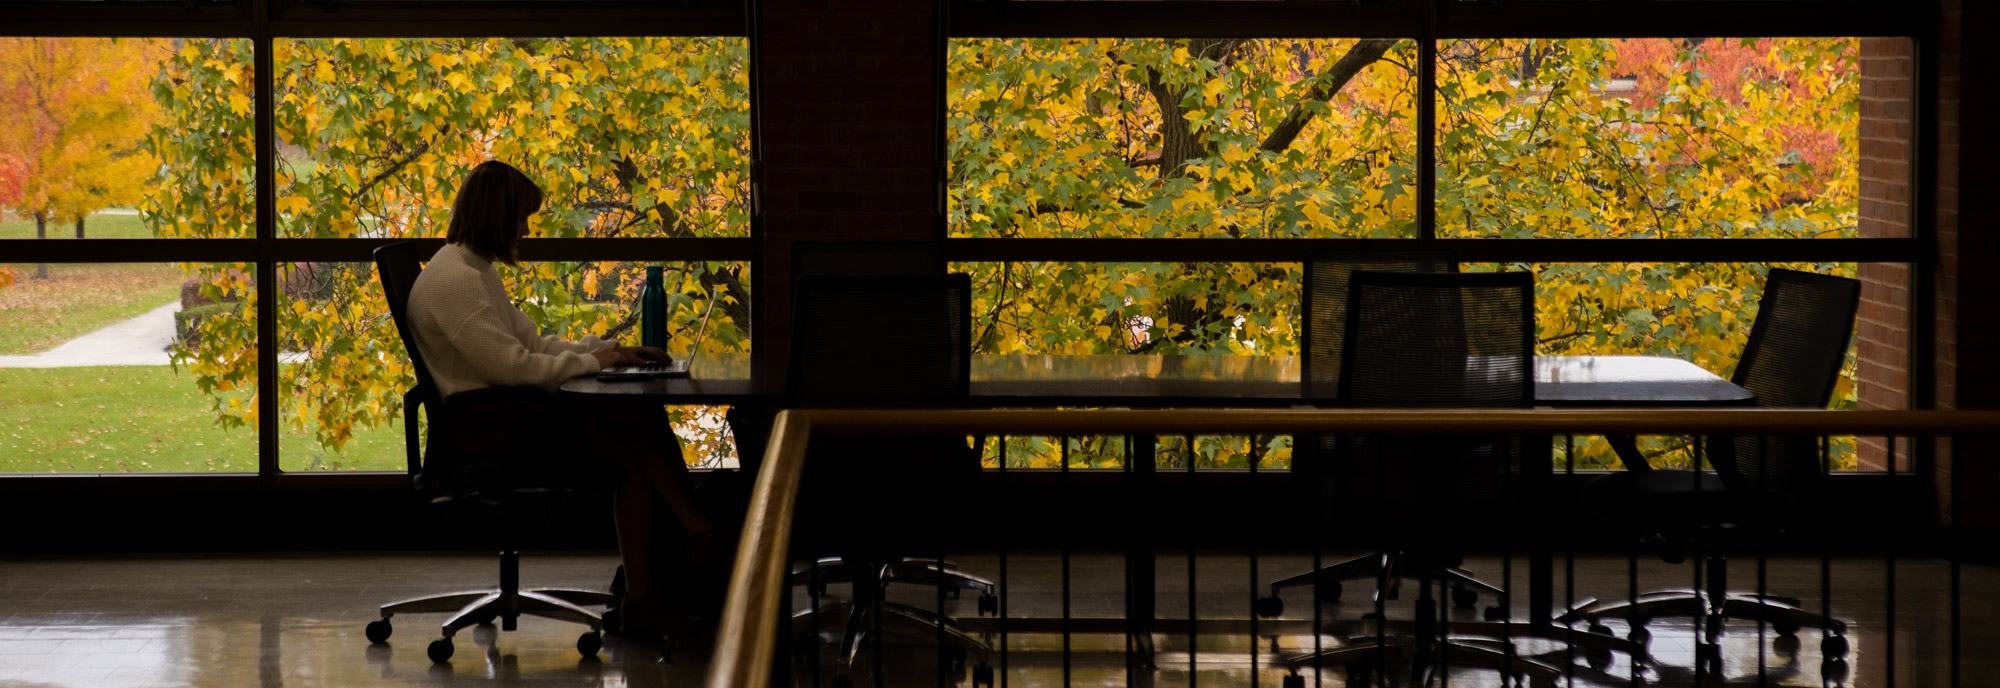 A student works in the Ohio Northern University 药学院. Fall leaves decorate the campus of Ohio Northern University.